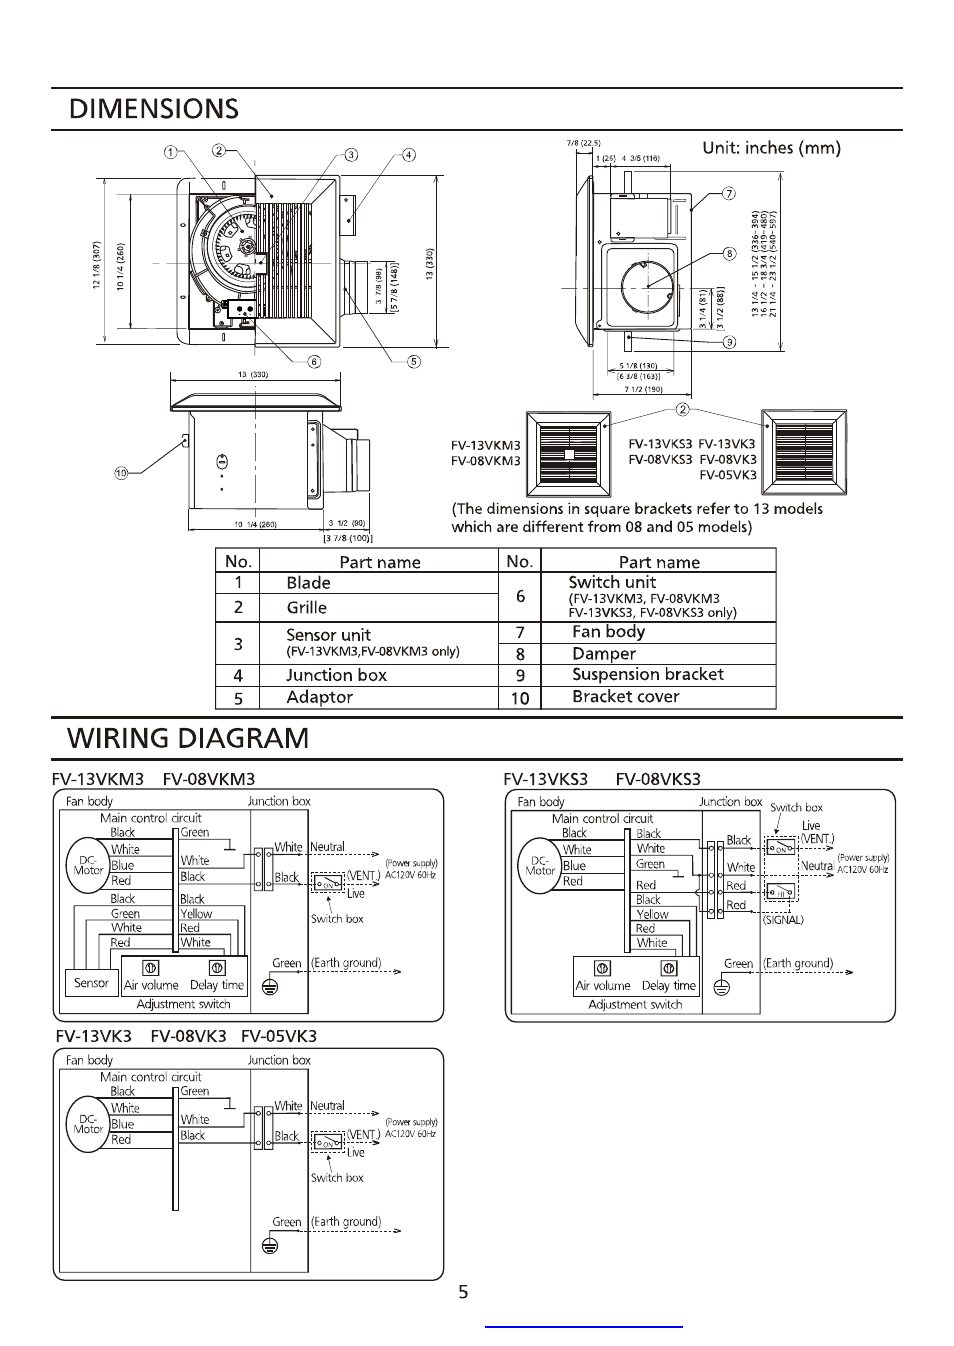 panasonic fv 08vks3 wiring diagram